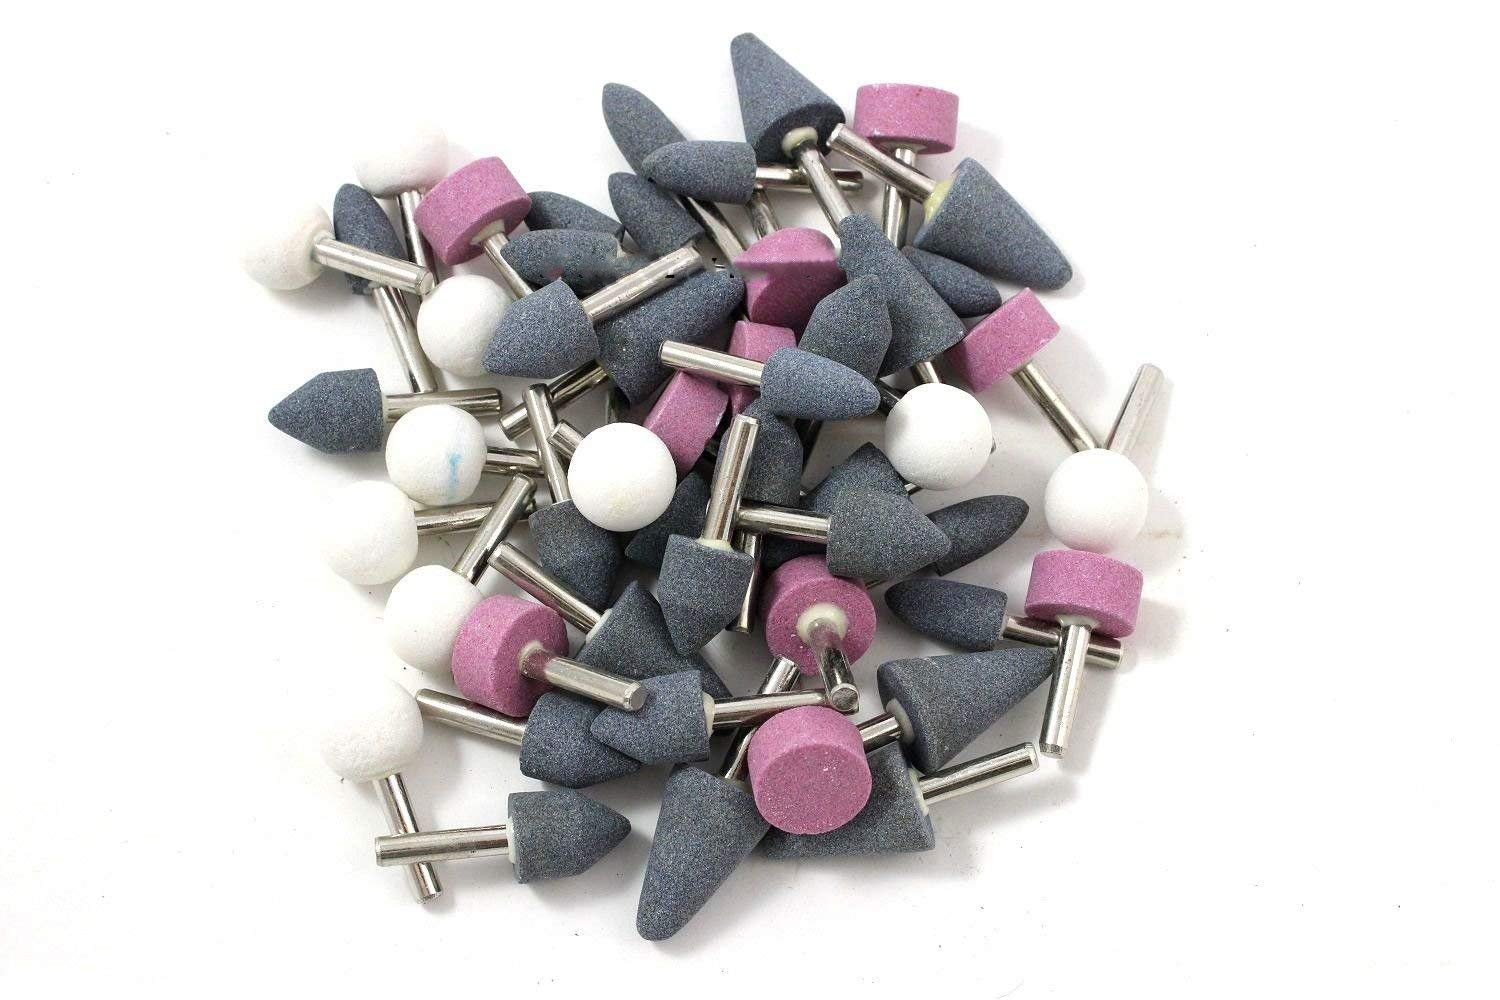 """ESKALEX>>50 PACK MOUNTED ABRASIVE GRINDING STONES 1/4"""" SHANK DRILL And ASSORTED SHAPES FOR USE IN MOST APPLICATIONS 1 1/4"""" LONG 1/4"""" SHANKS PERFECT FOR THE SHOP OR GARAGE GREAT VALUE"""